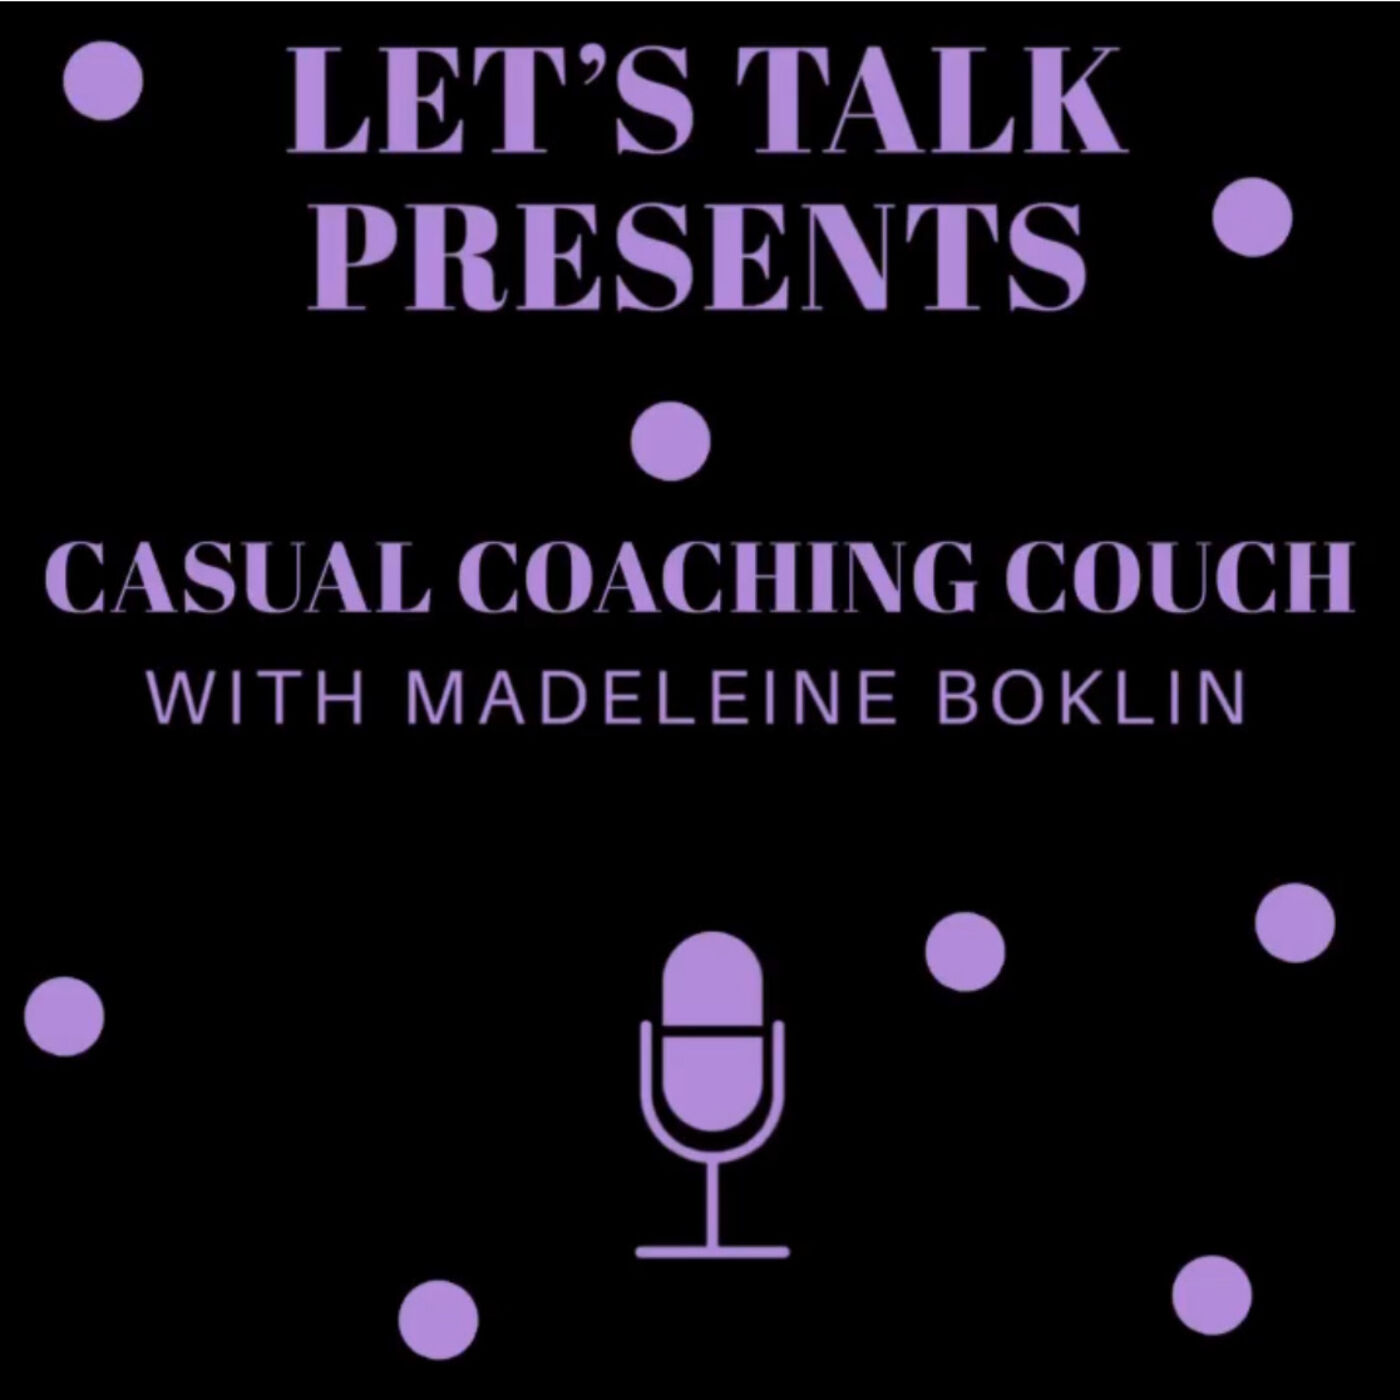 Casual Coaching Couch with Madeleine Boklin